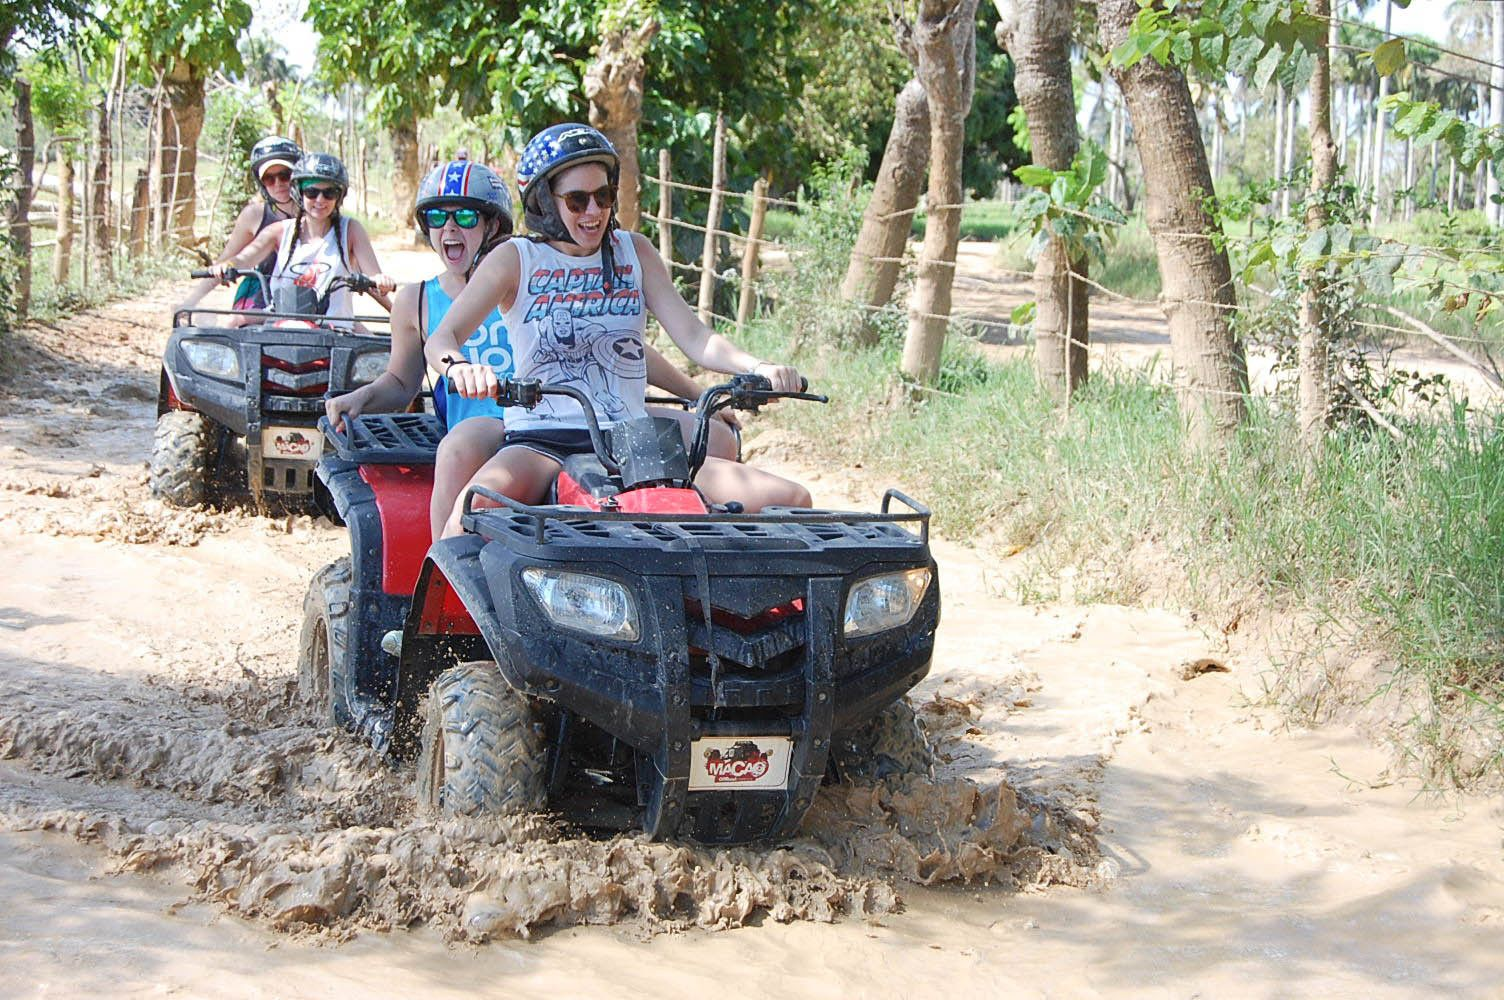 People driving ATVs through the mud in Punta Cana